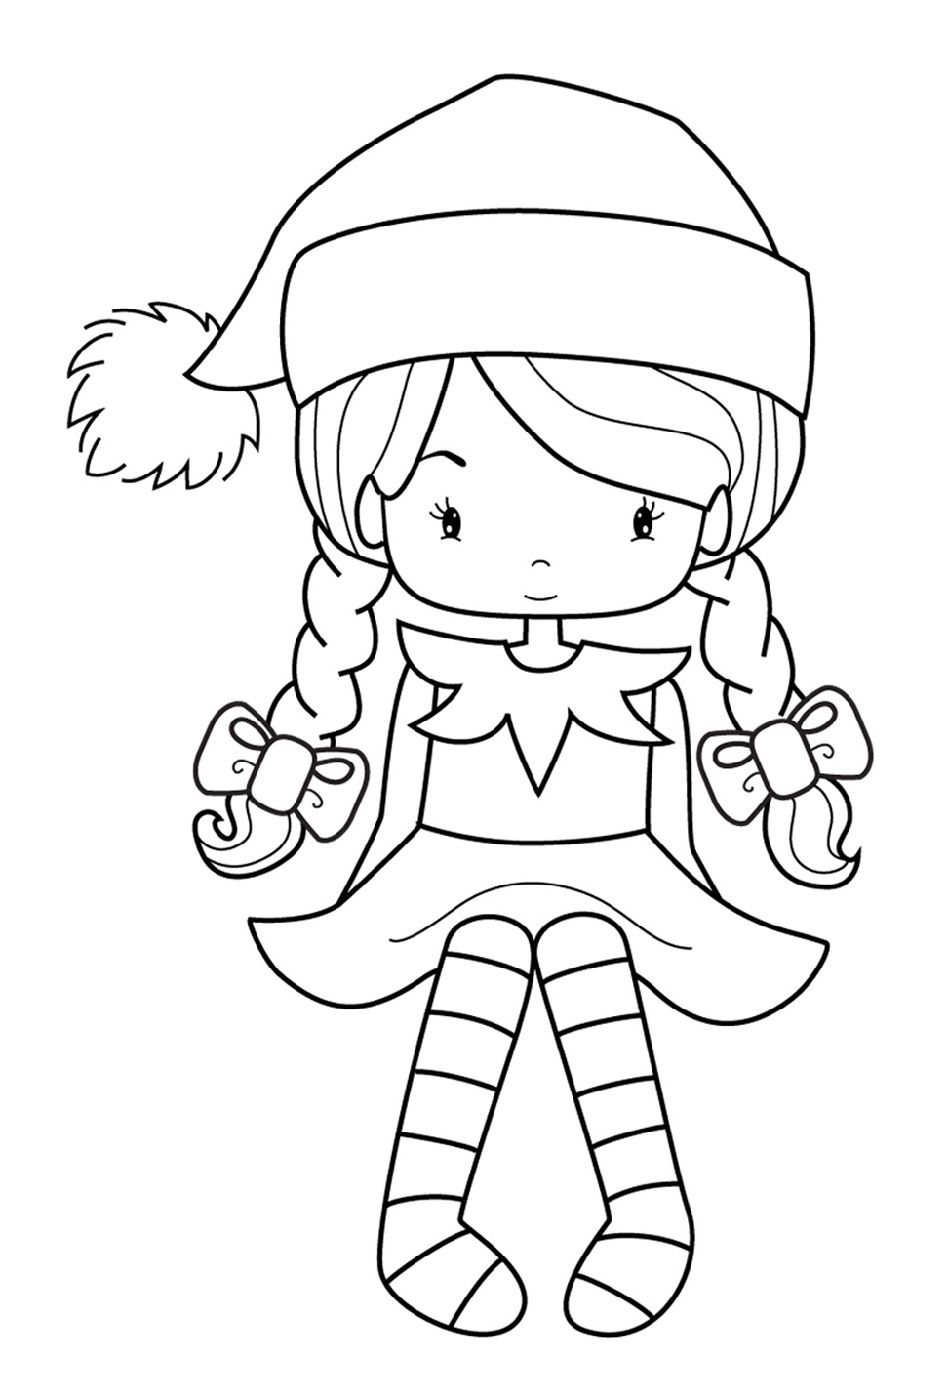 Elf On The Shelf Printable Coloring Pages K5 Worksheets Coloring Pages Printable Coloring Printable Coloring Pages